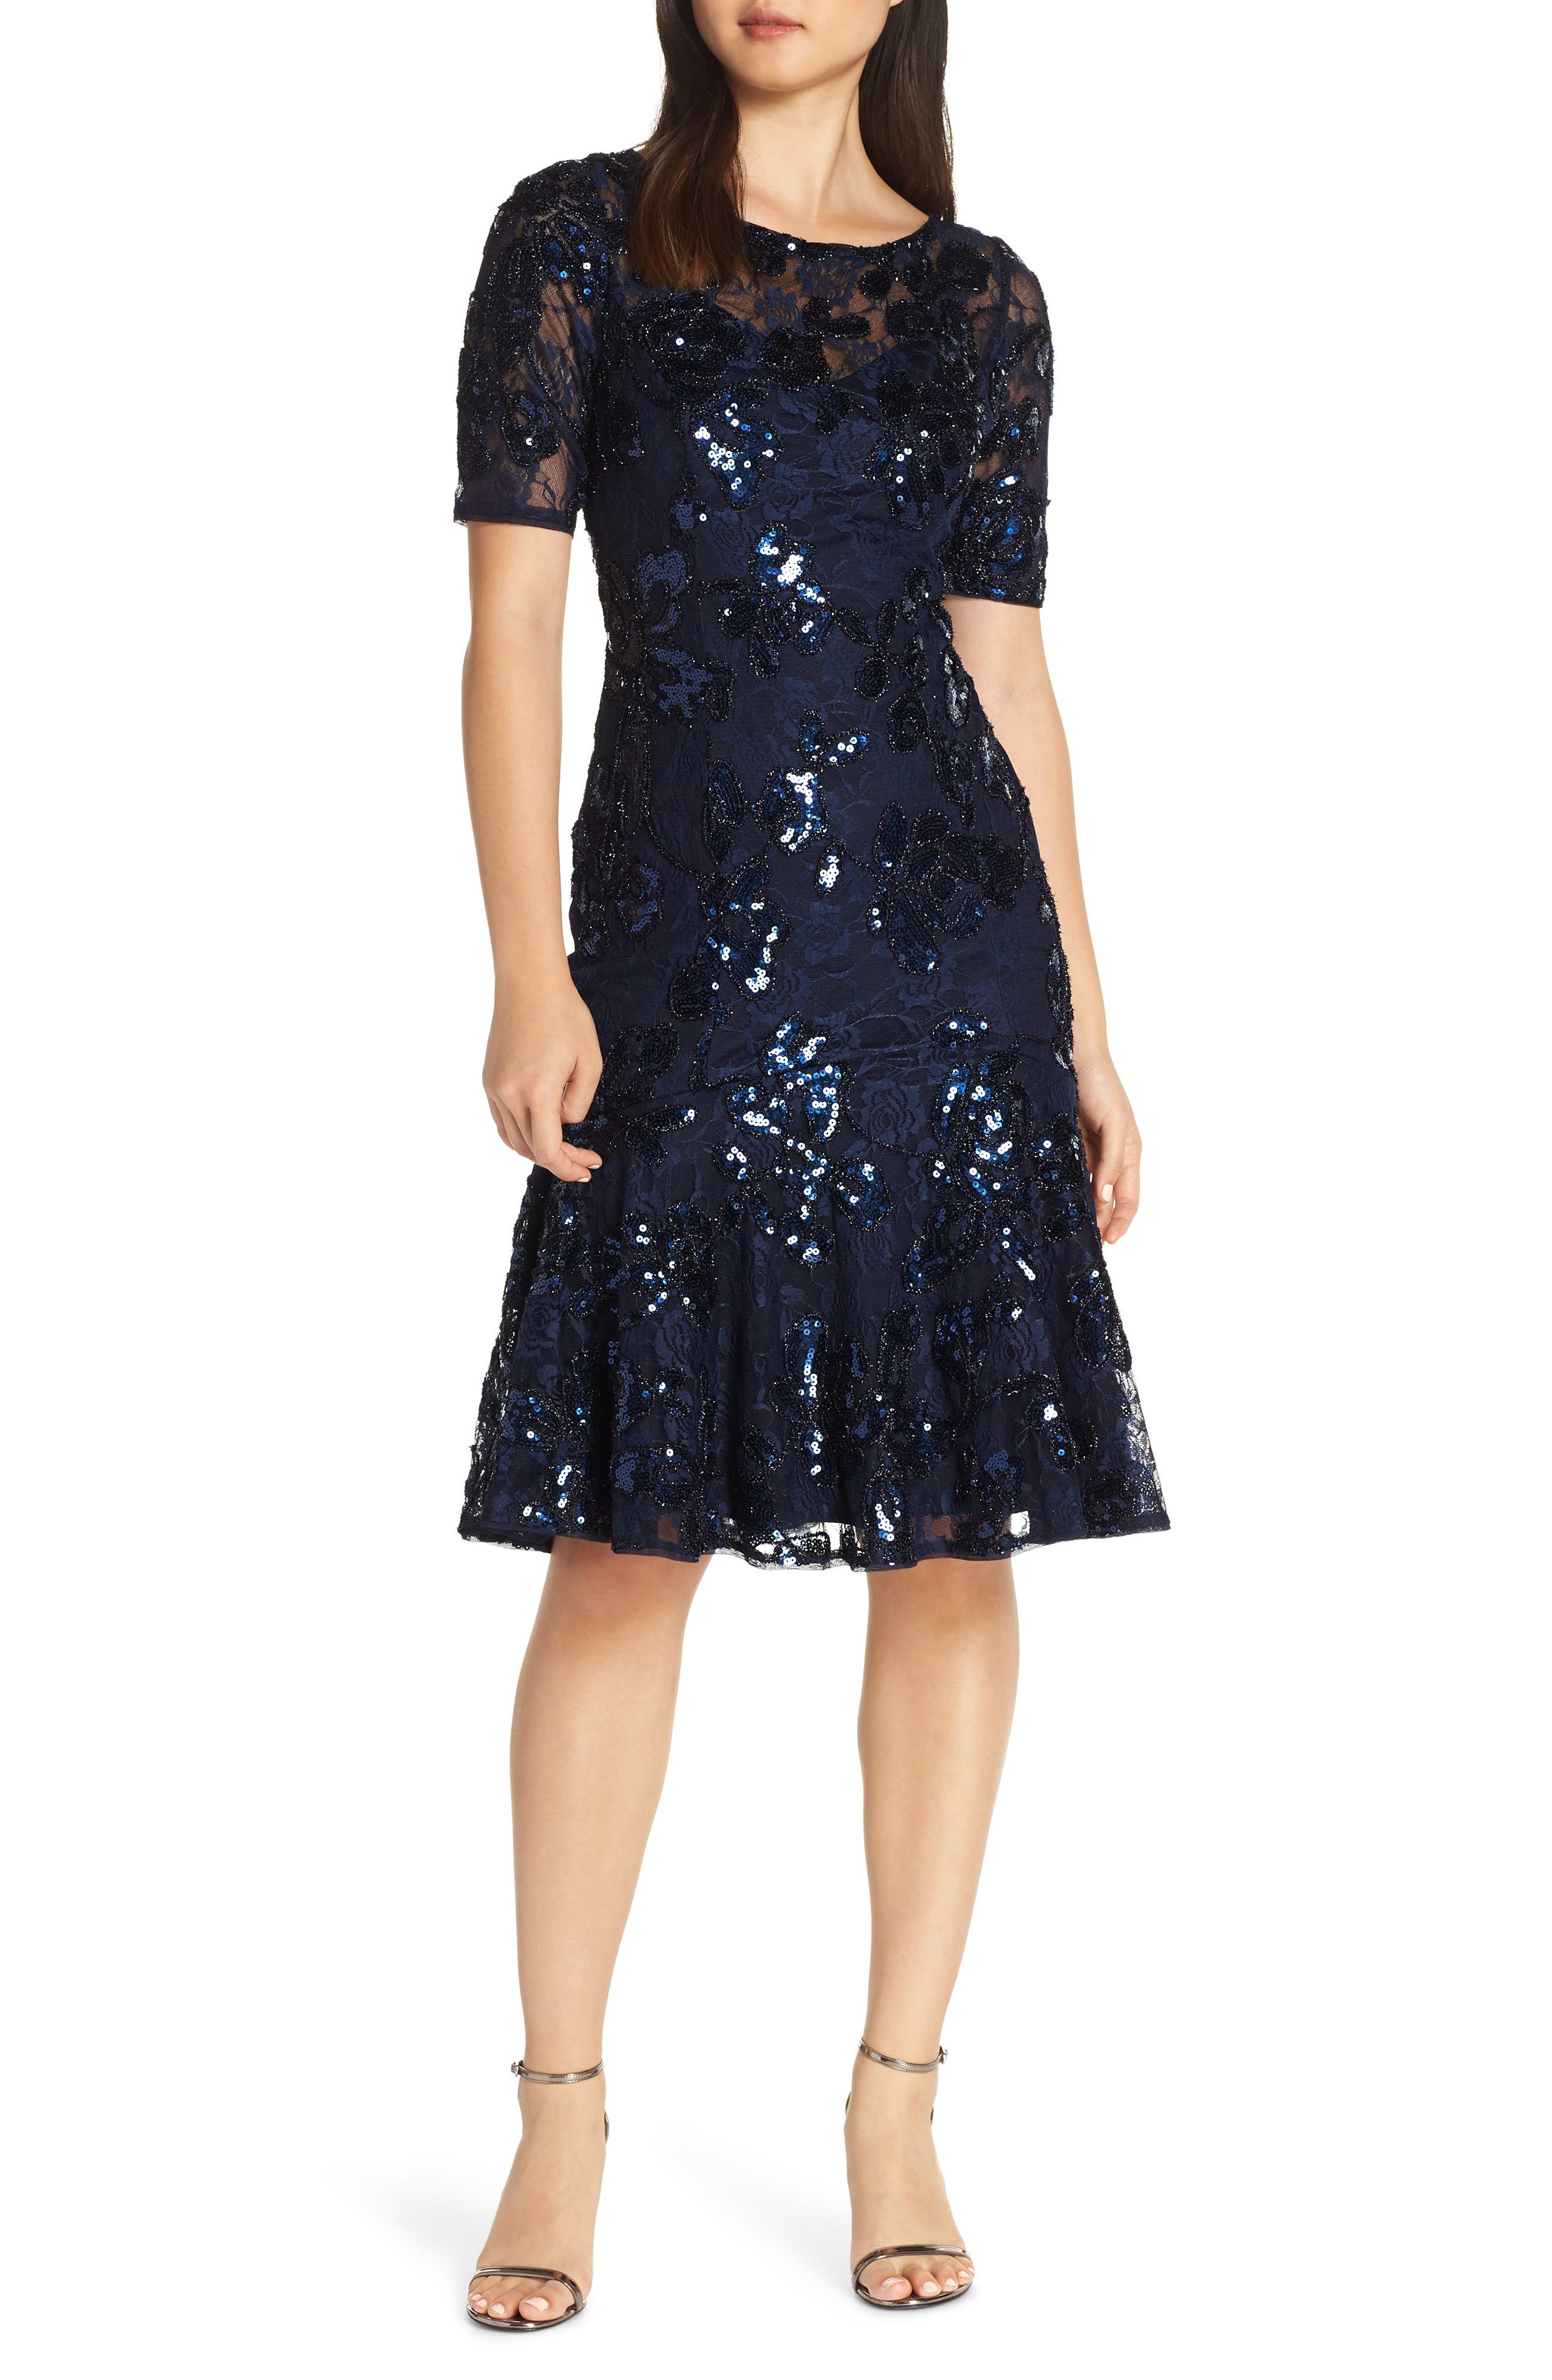 ADRIANNA PAPELL Sequin Embellished Dress, Main, color, 410